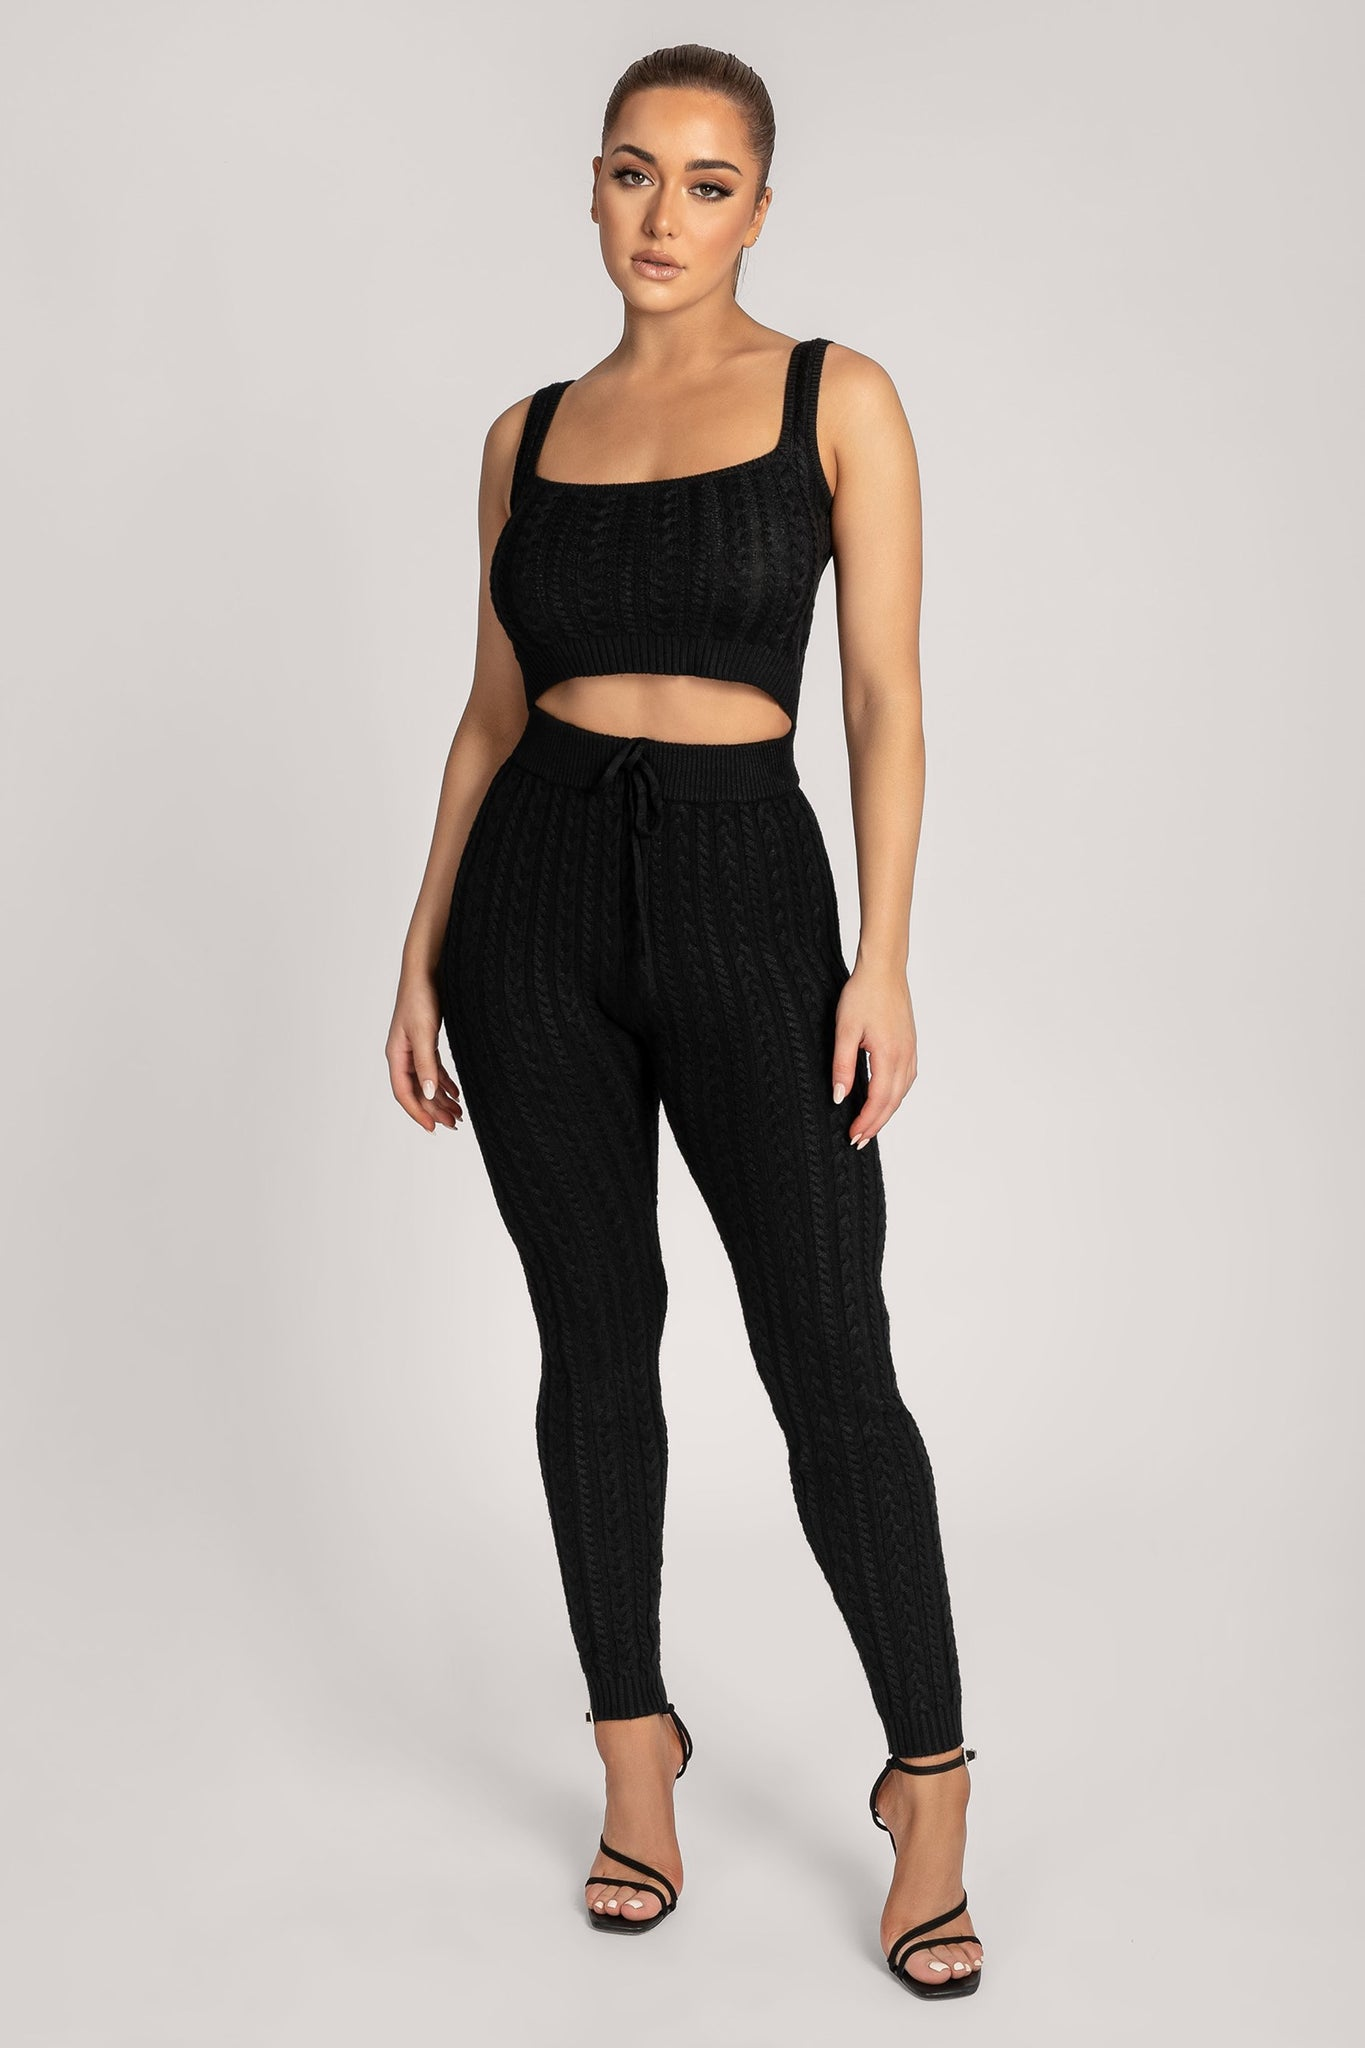 Penelope Cable Knit Leggings - Black - MESHKI